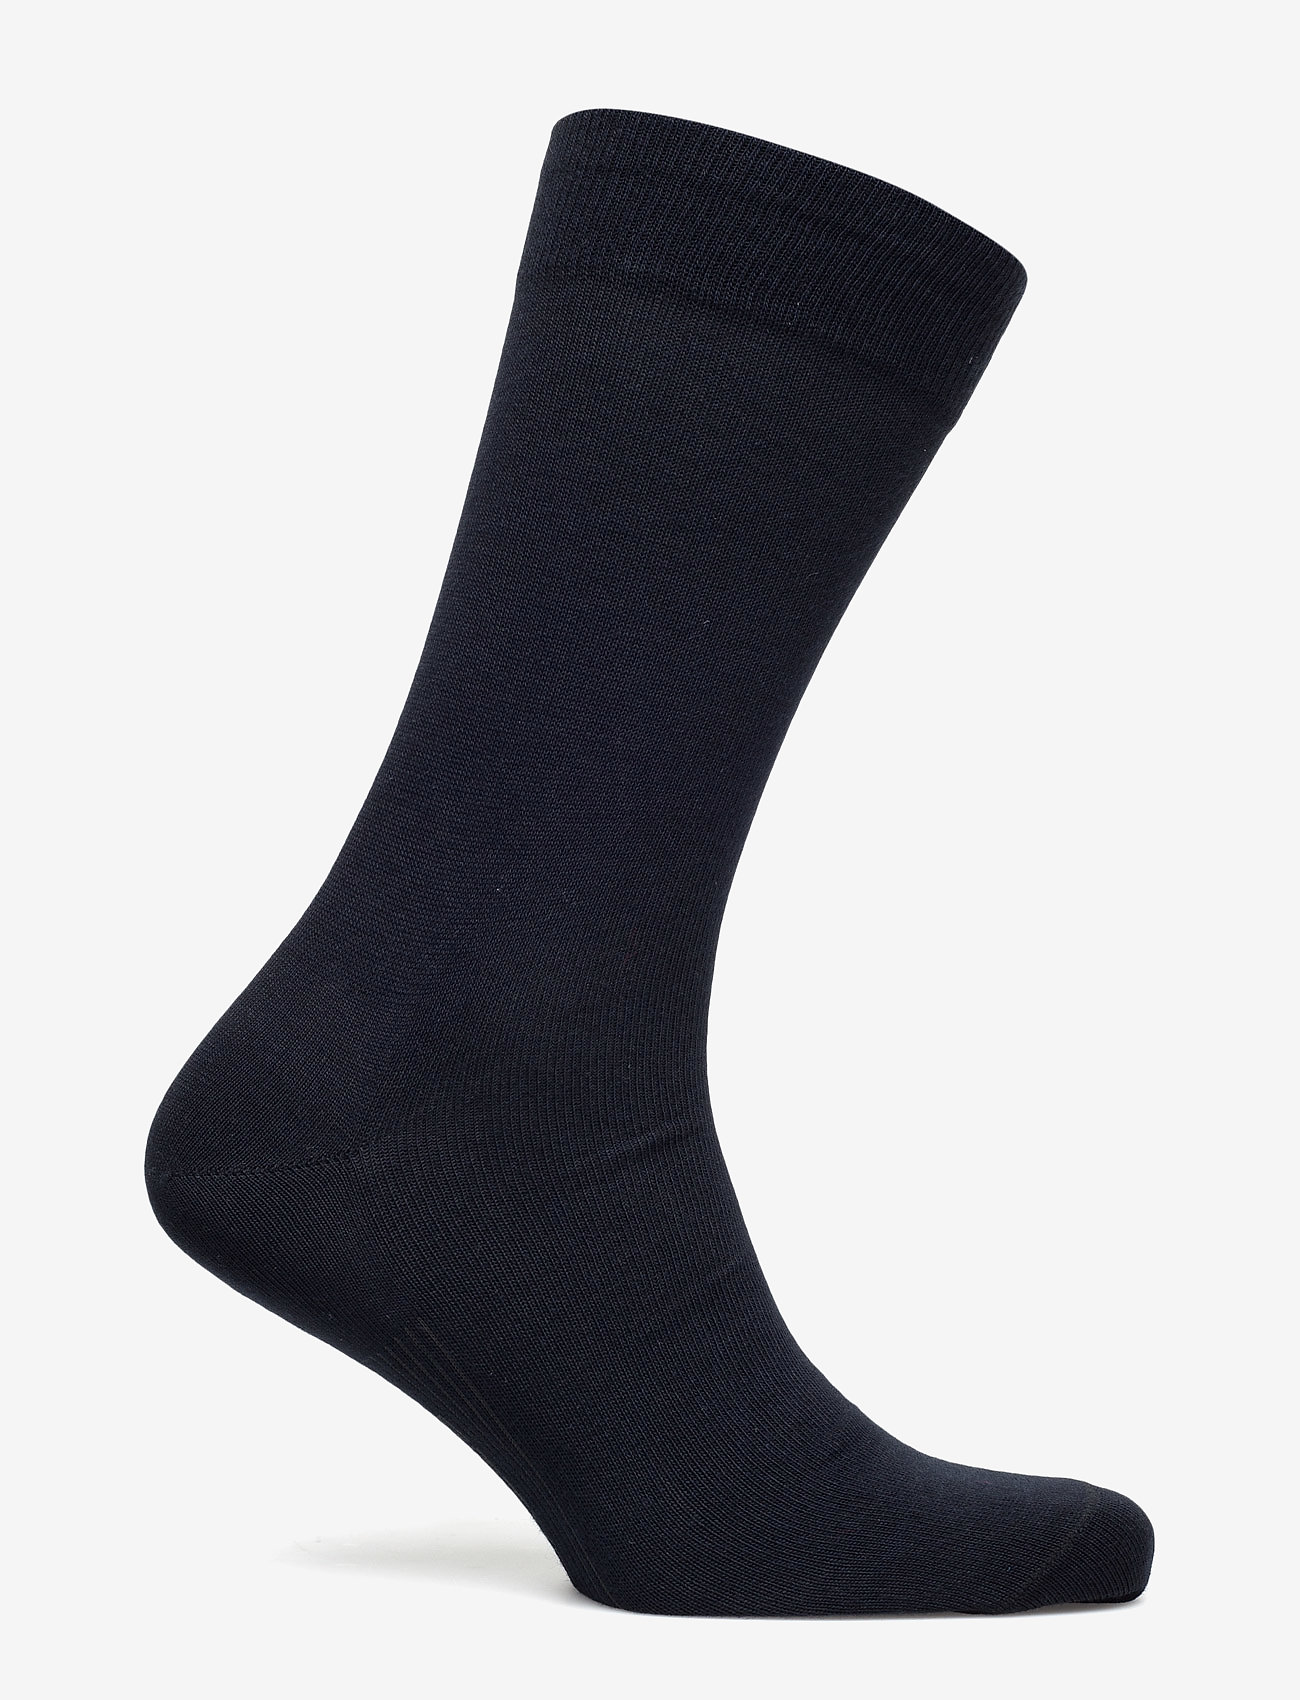 Egtved - Egtved business socks - regulære sokker - blue - 1